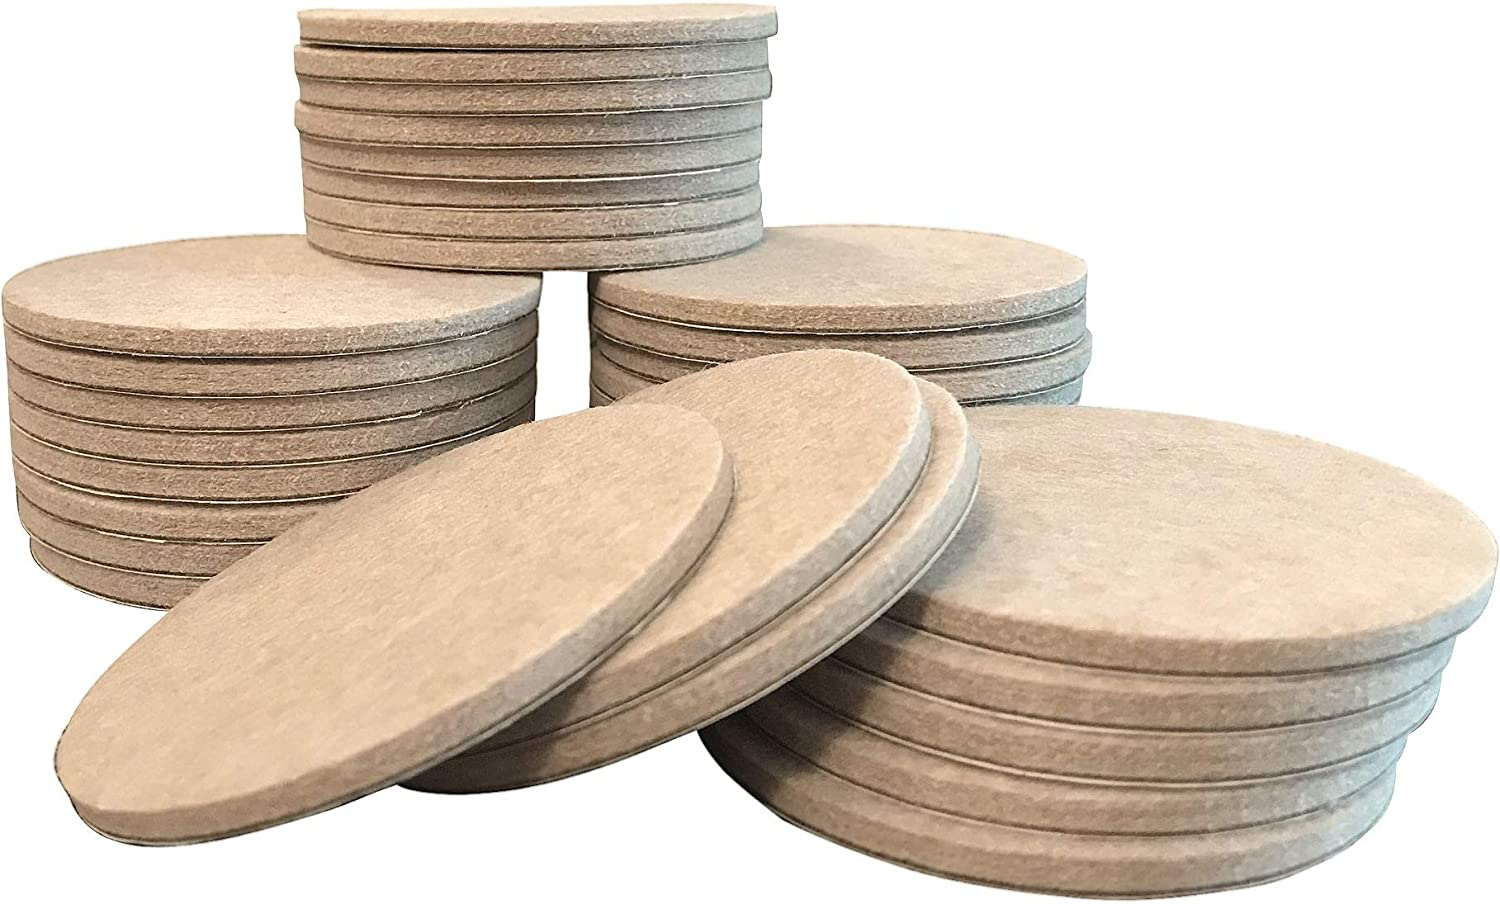 "Felt so good 8804E Self Adhesive Felt Furniture Pads 3"", Beige, 32 Pack"